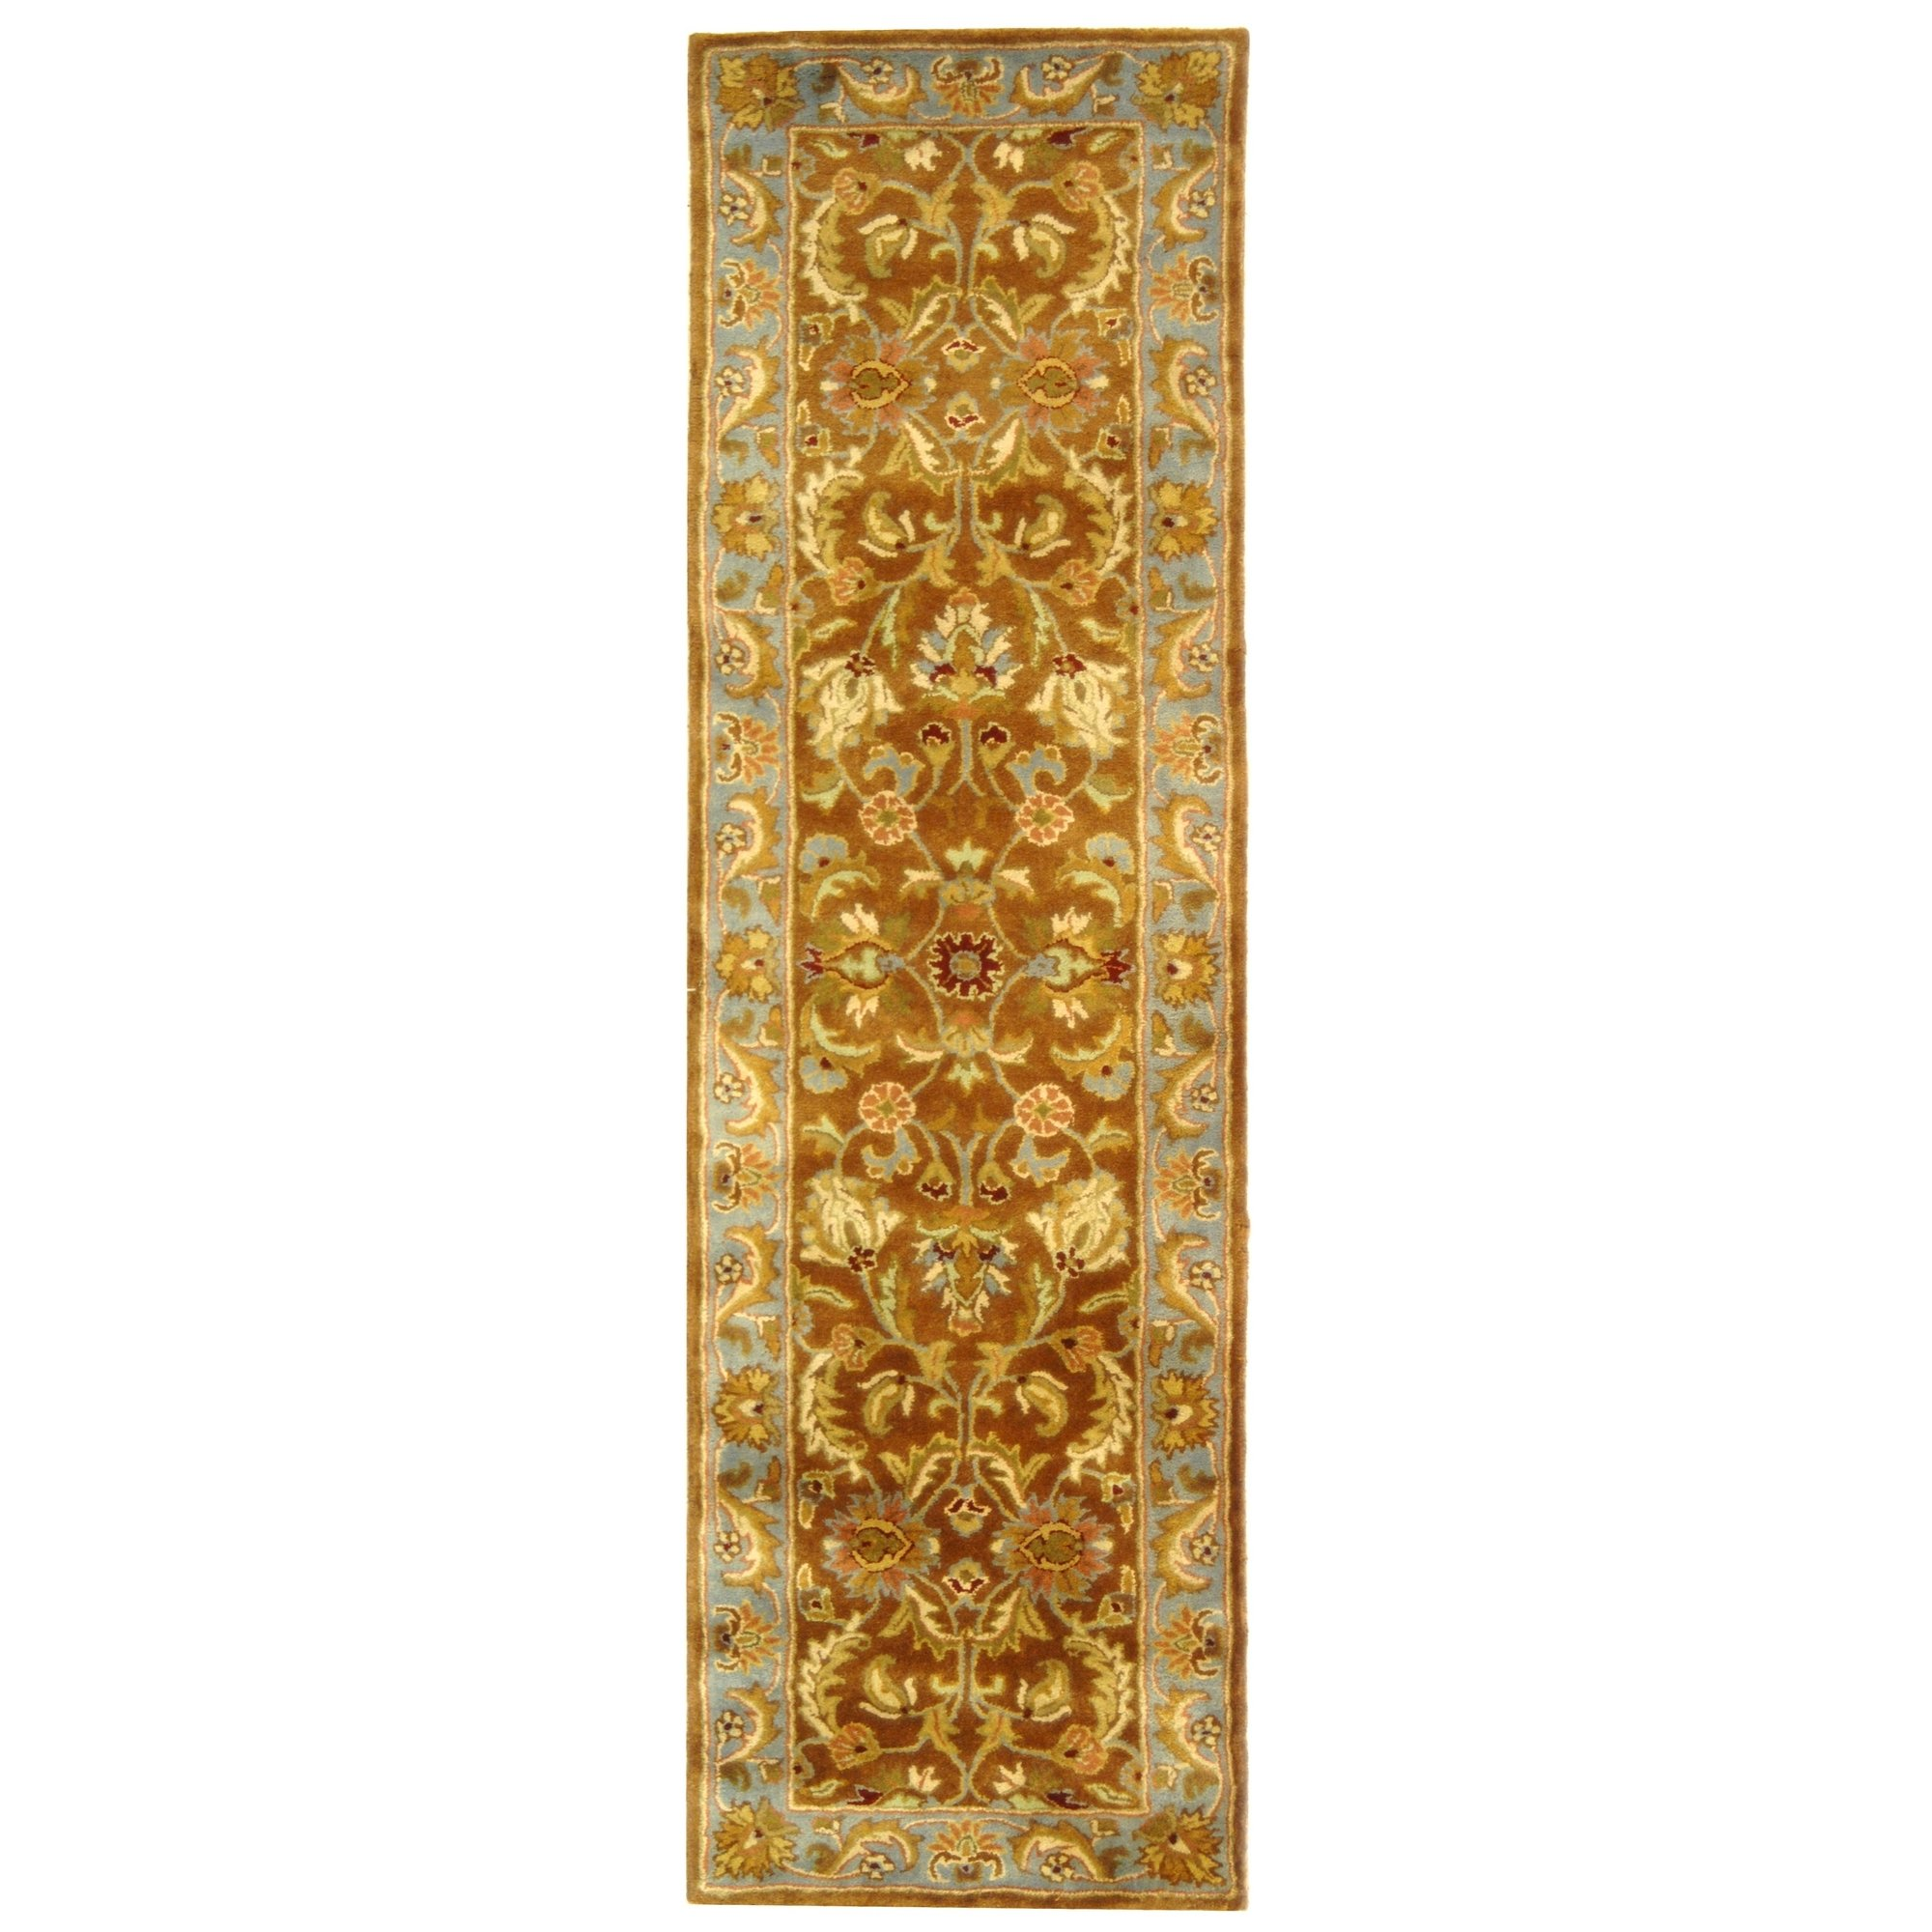 Safavieh Heritage Collection HG812A Handcrafted Traditional Oriental Brown and Blue Wool Runner (2'3'' x 18')